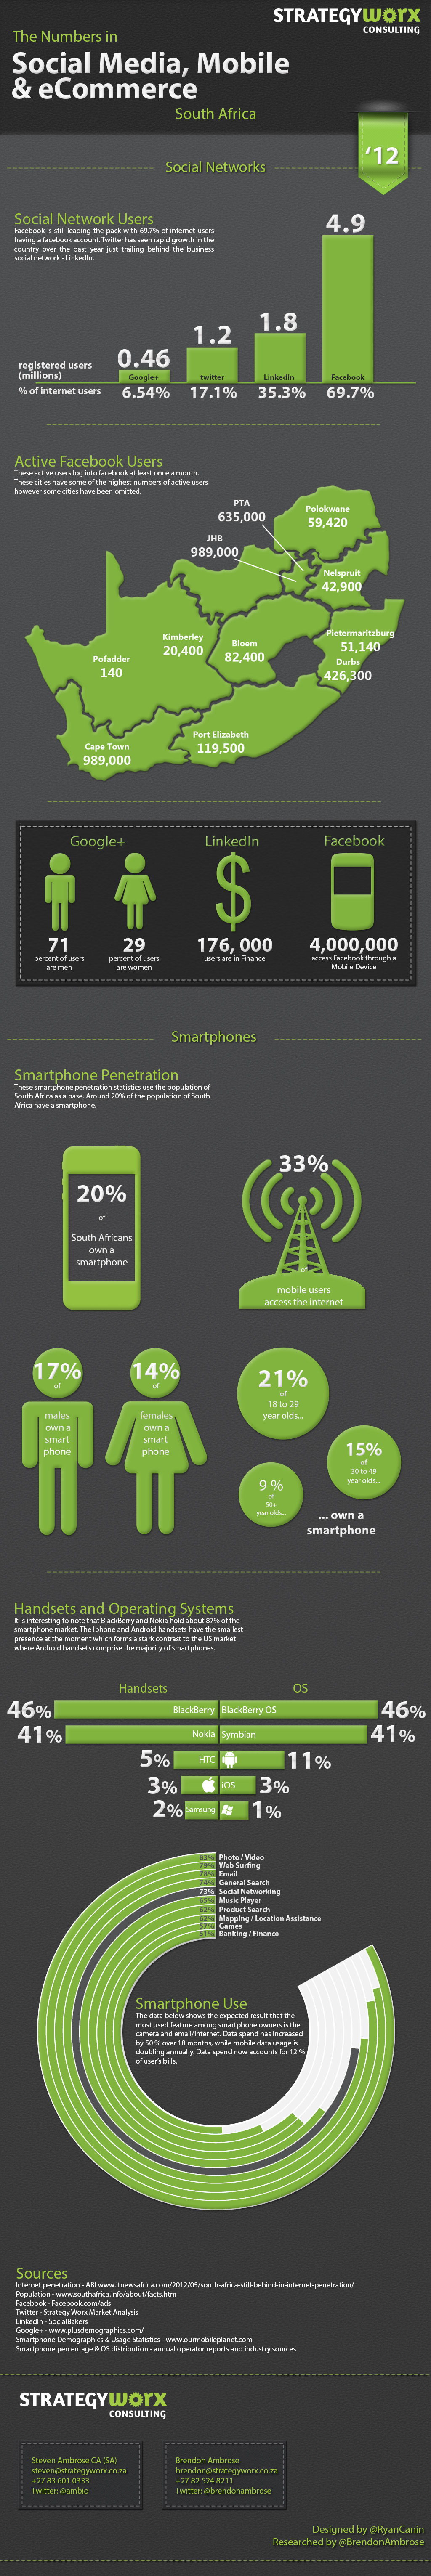 SocialMedia & Smartphone in South Africa Infographic | ICT ...